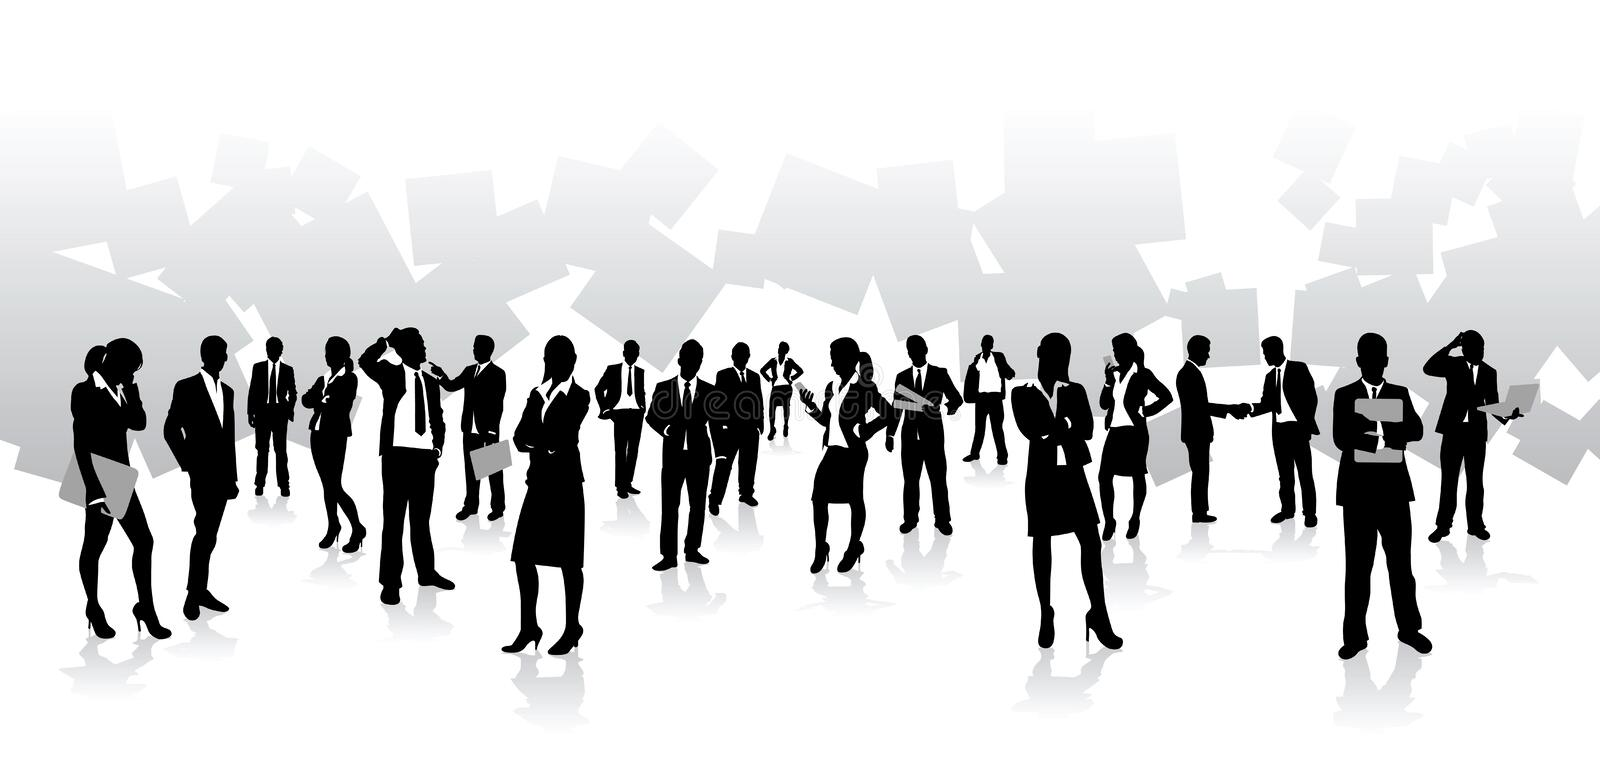 Business people background royalty free illustration